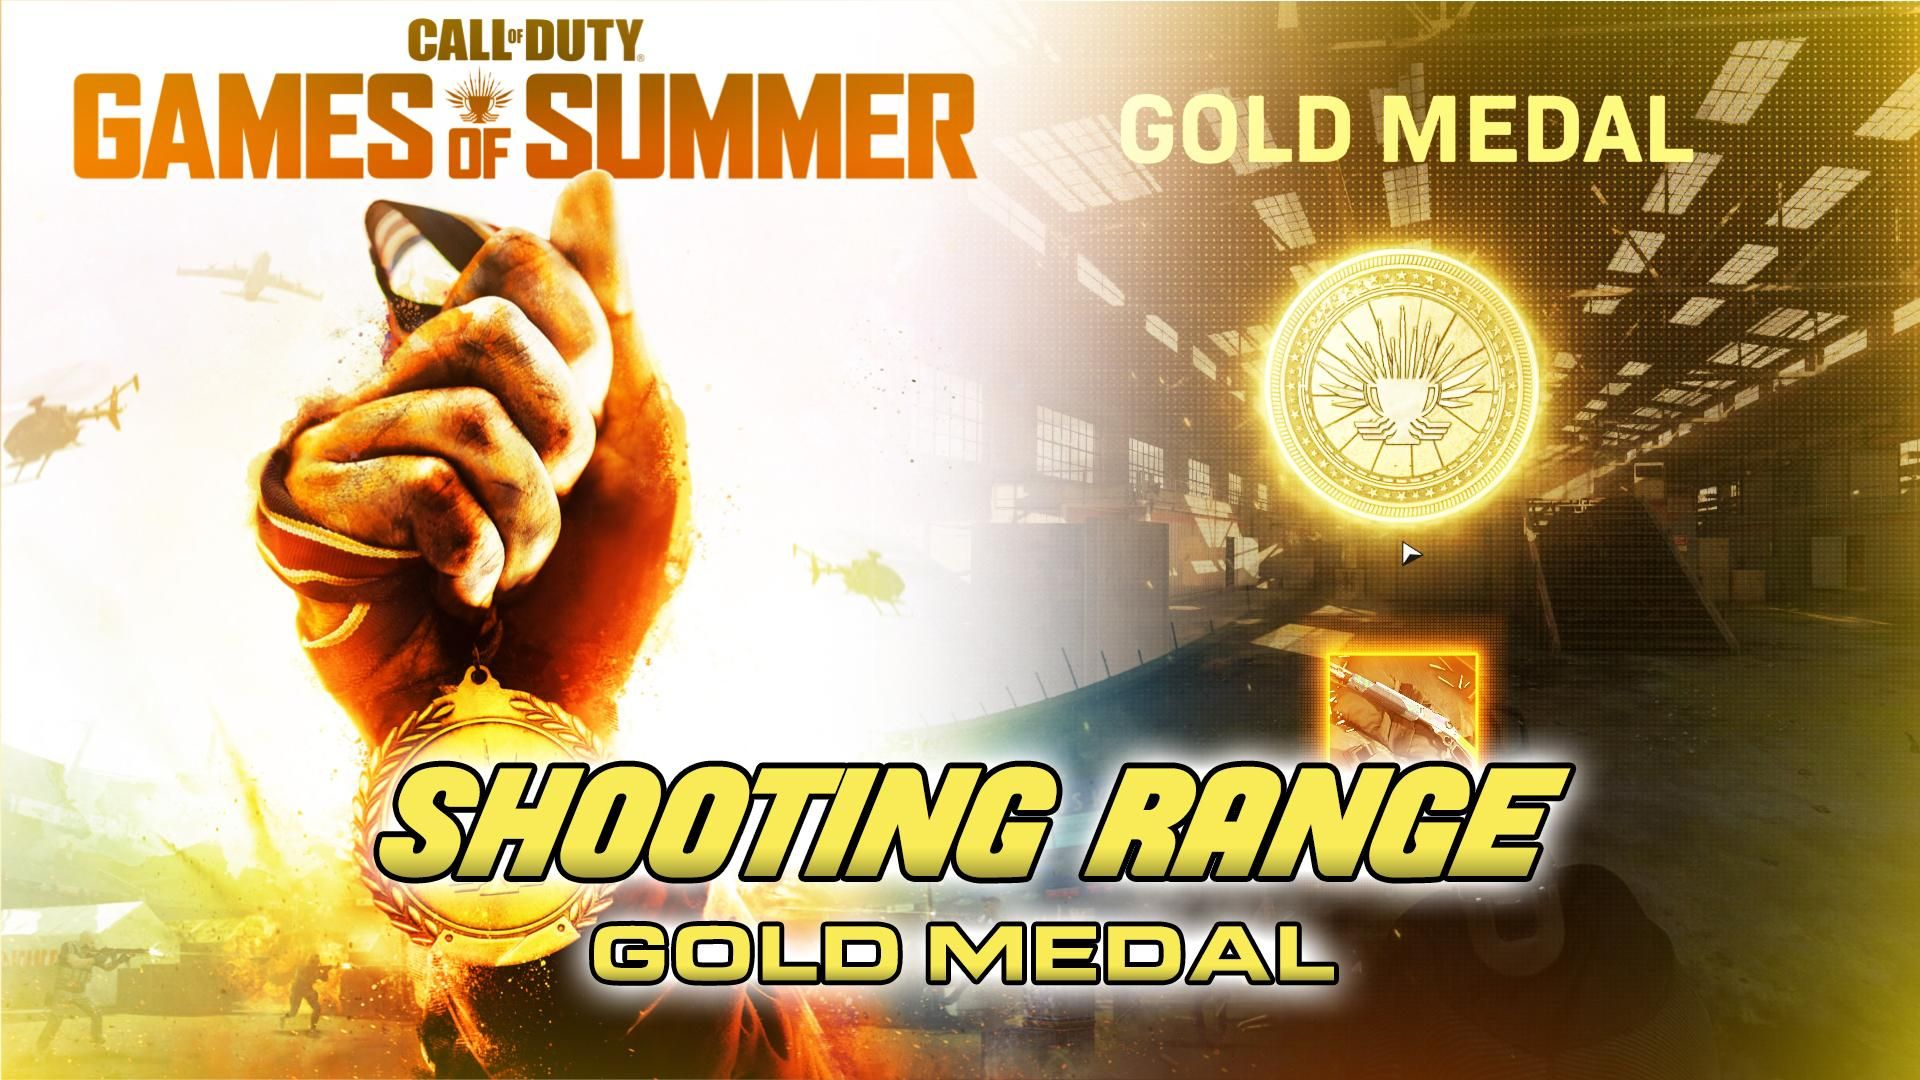 Call Of Duty Warzone Games Of Summer Day 5 Shooting Range Gold Medal Video First Person Shooter Games Call Of Duty Gold Medal